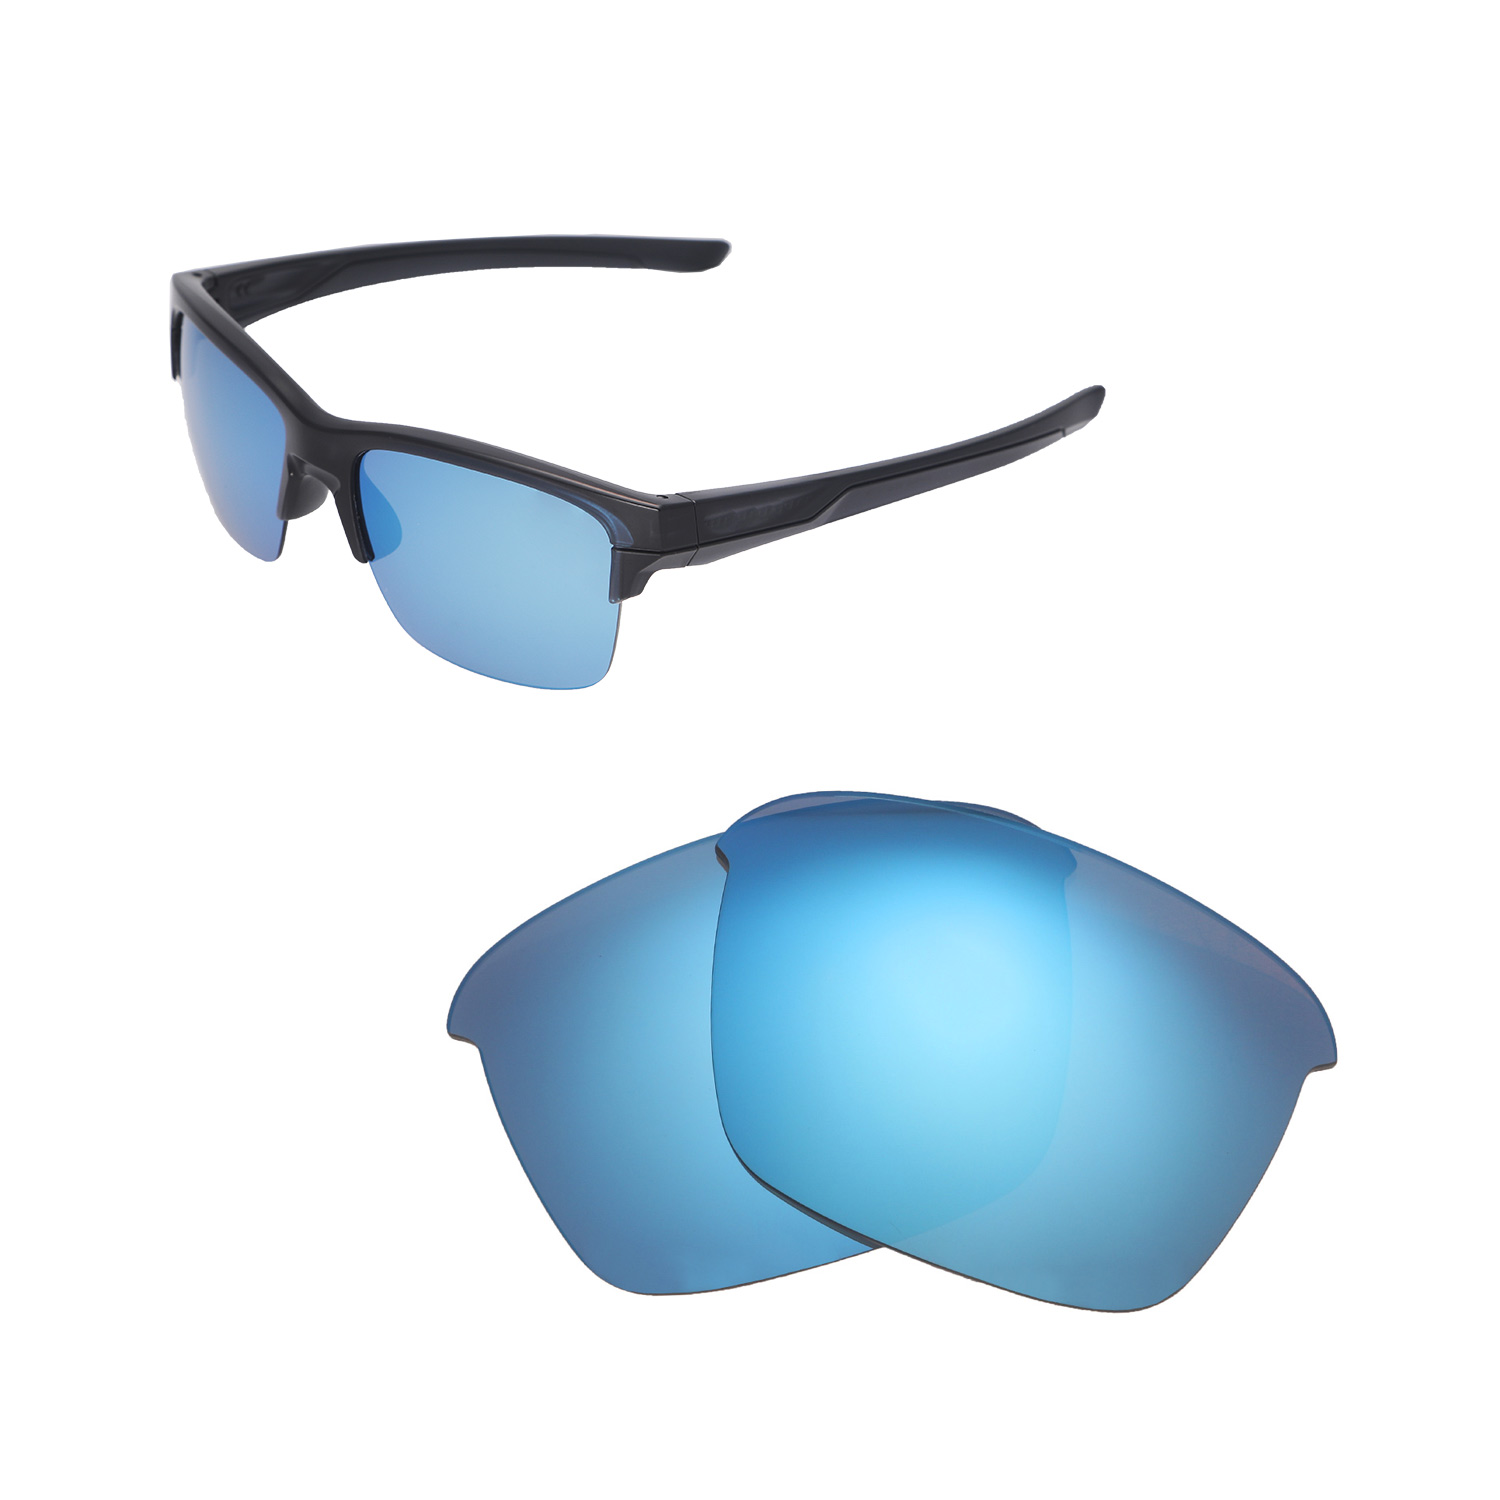 d9c3adb1f2 Details about New Walleva Ice Blue Polarized Replacement Lenses For Oakley  Thinlink Sunglasses